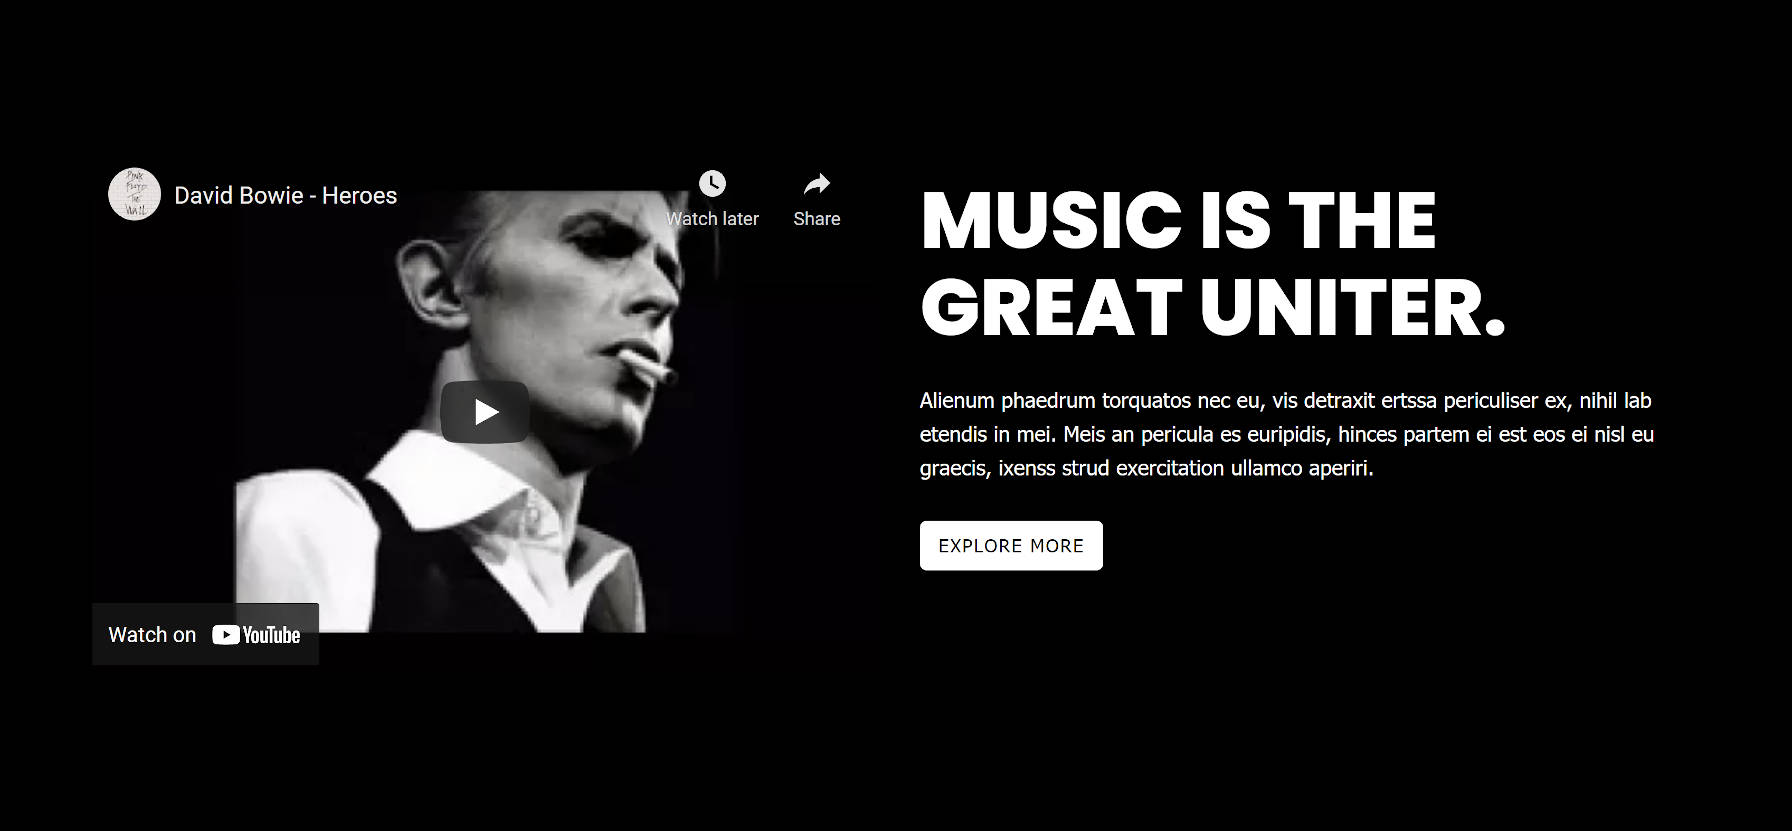 recreating-the-music-artist-wordpress-theme-homepage-with-the-block-editor-4 Recreating the Music Artist WordPress Theme Homepage With the Block Editor